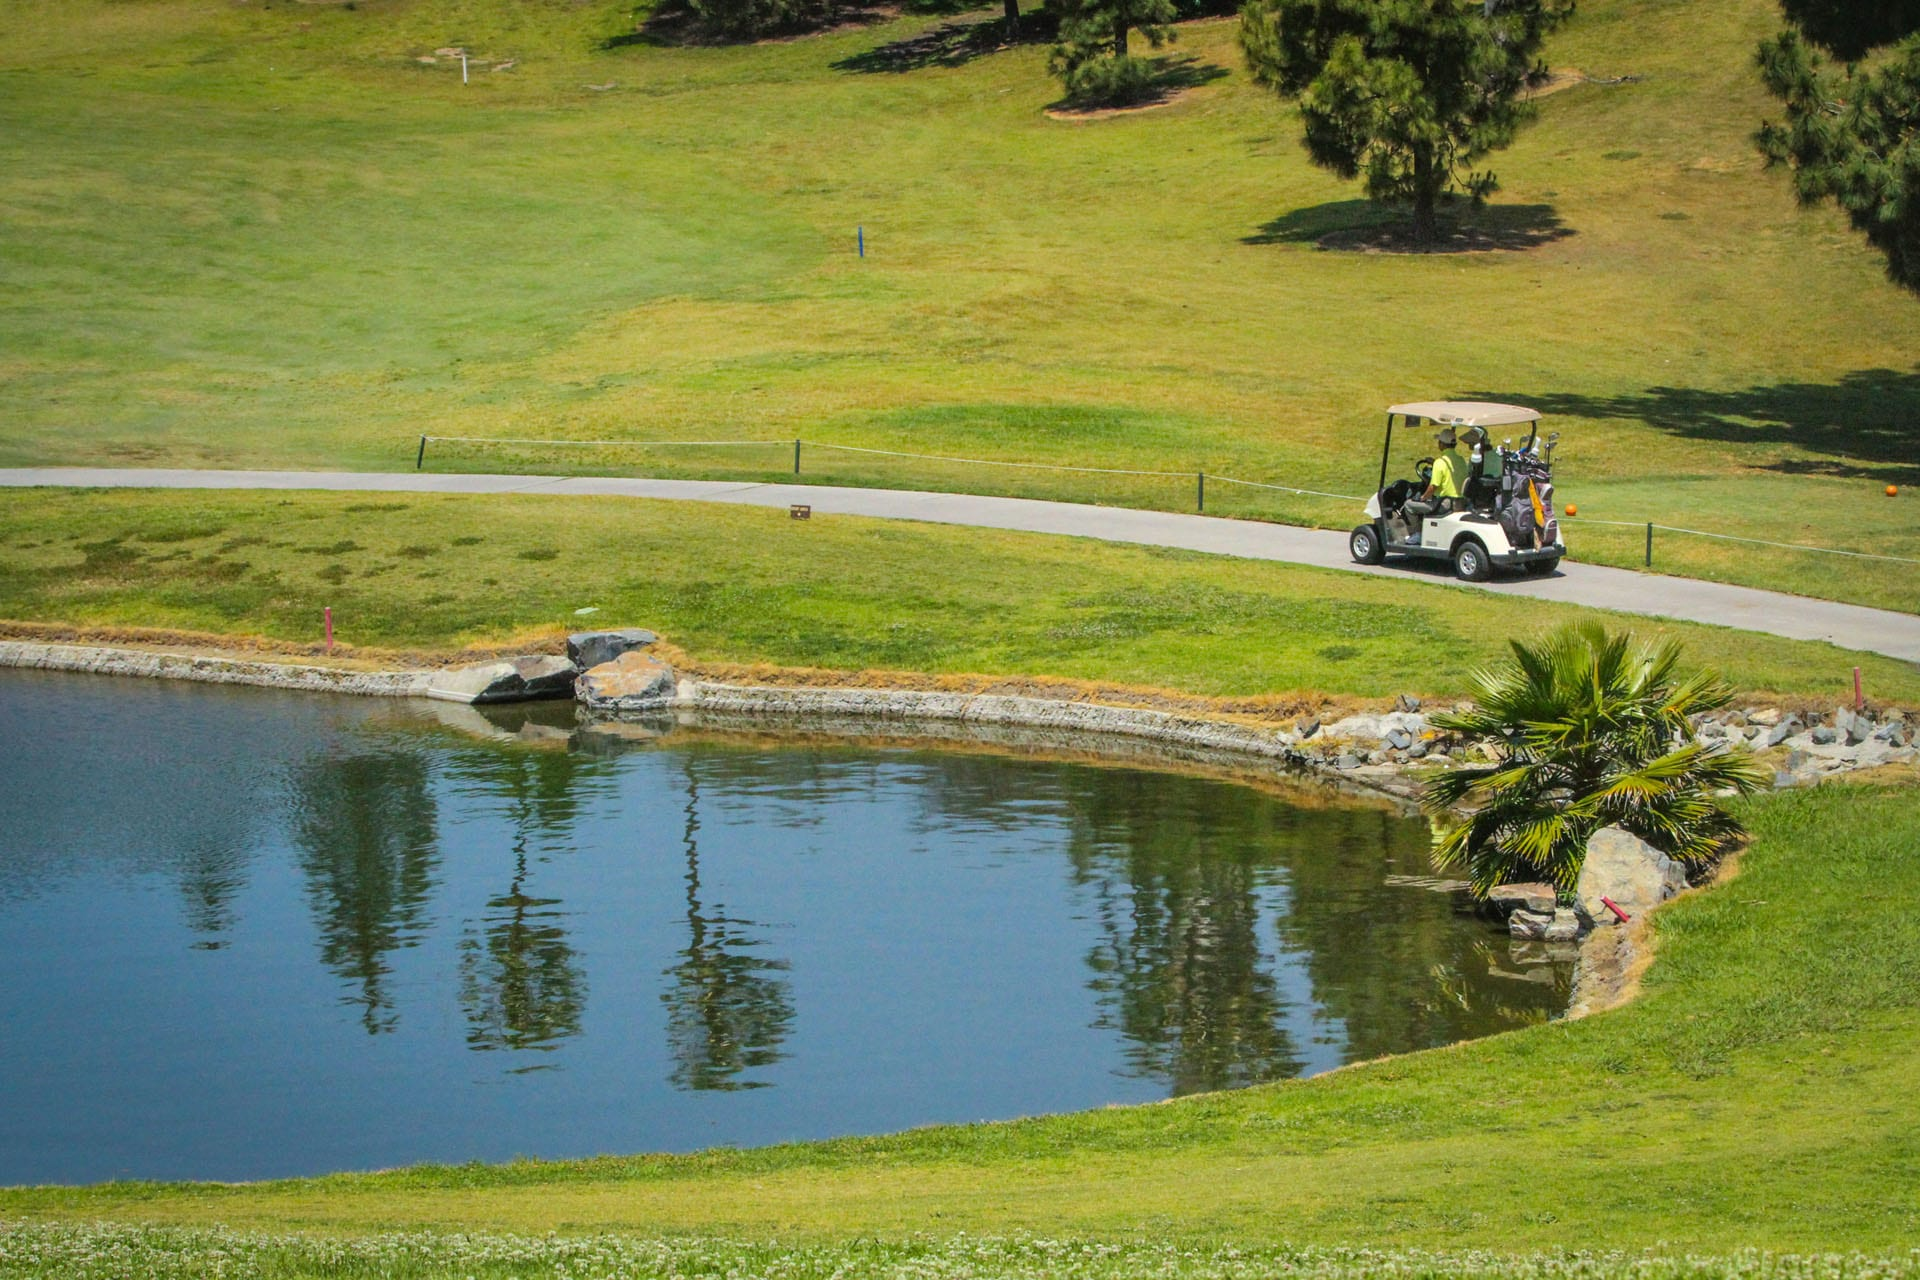 People driving a golf cart around a lake